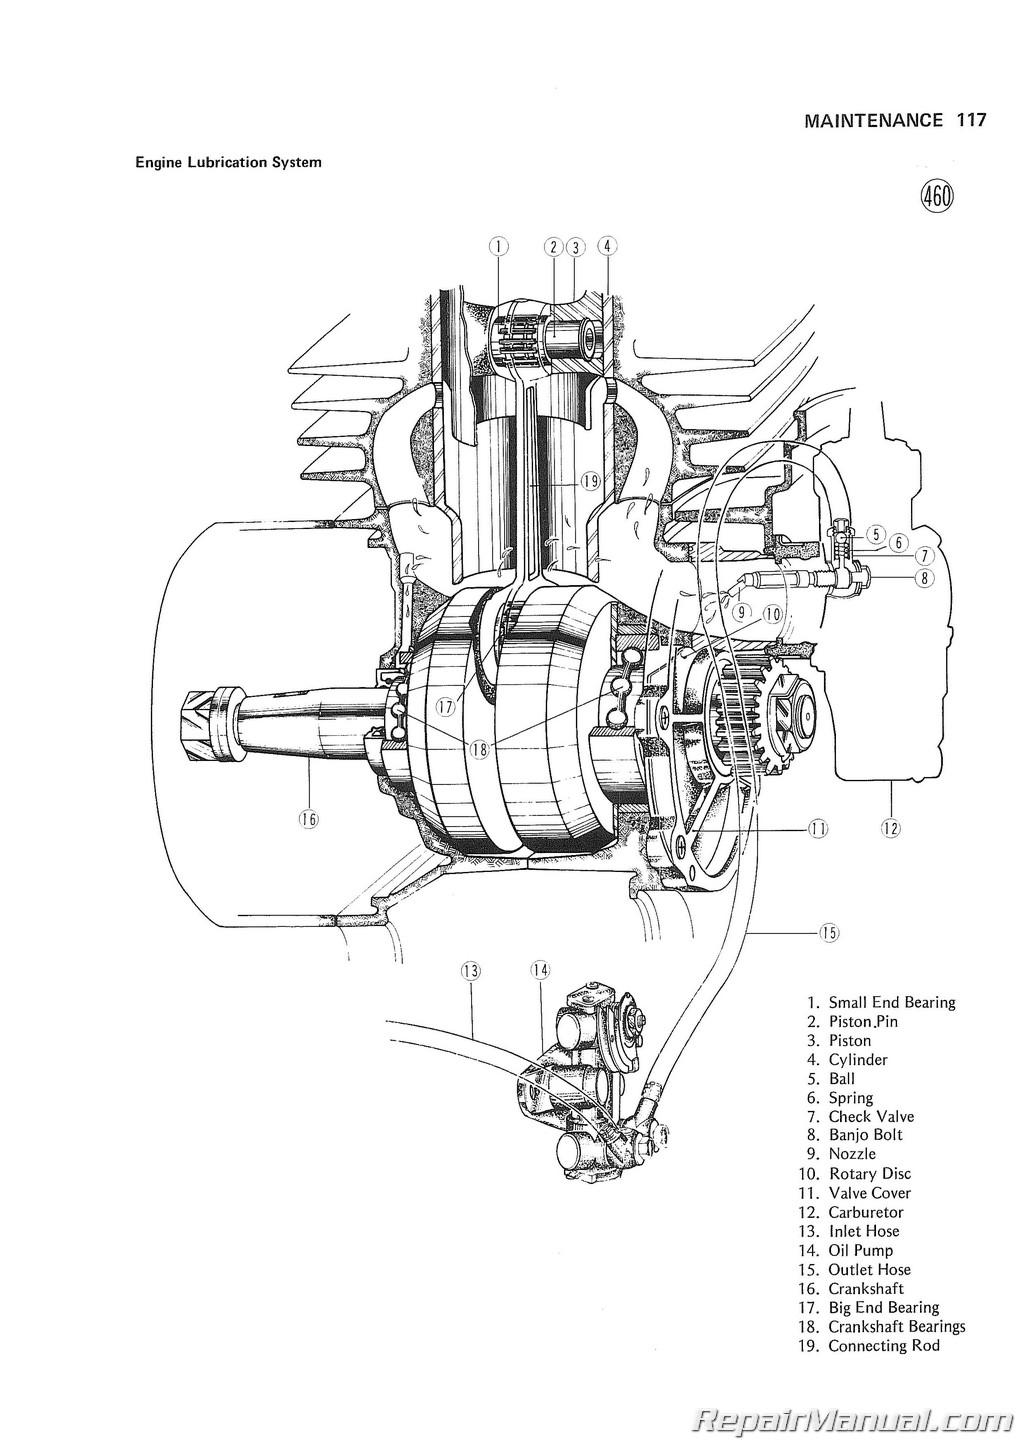 Ke175 Motorcycle Service Manual Kawasaki Ke175b1